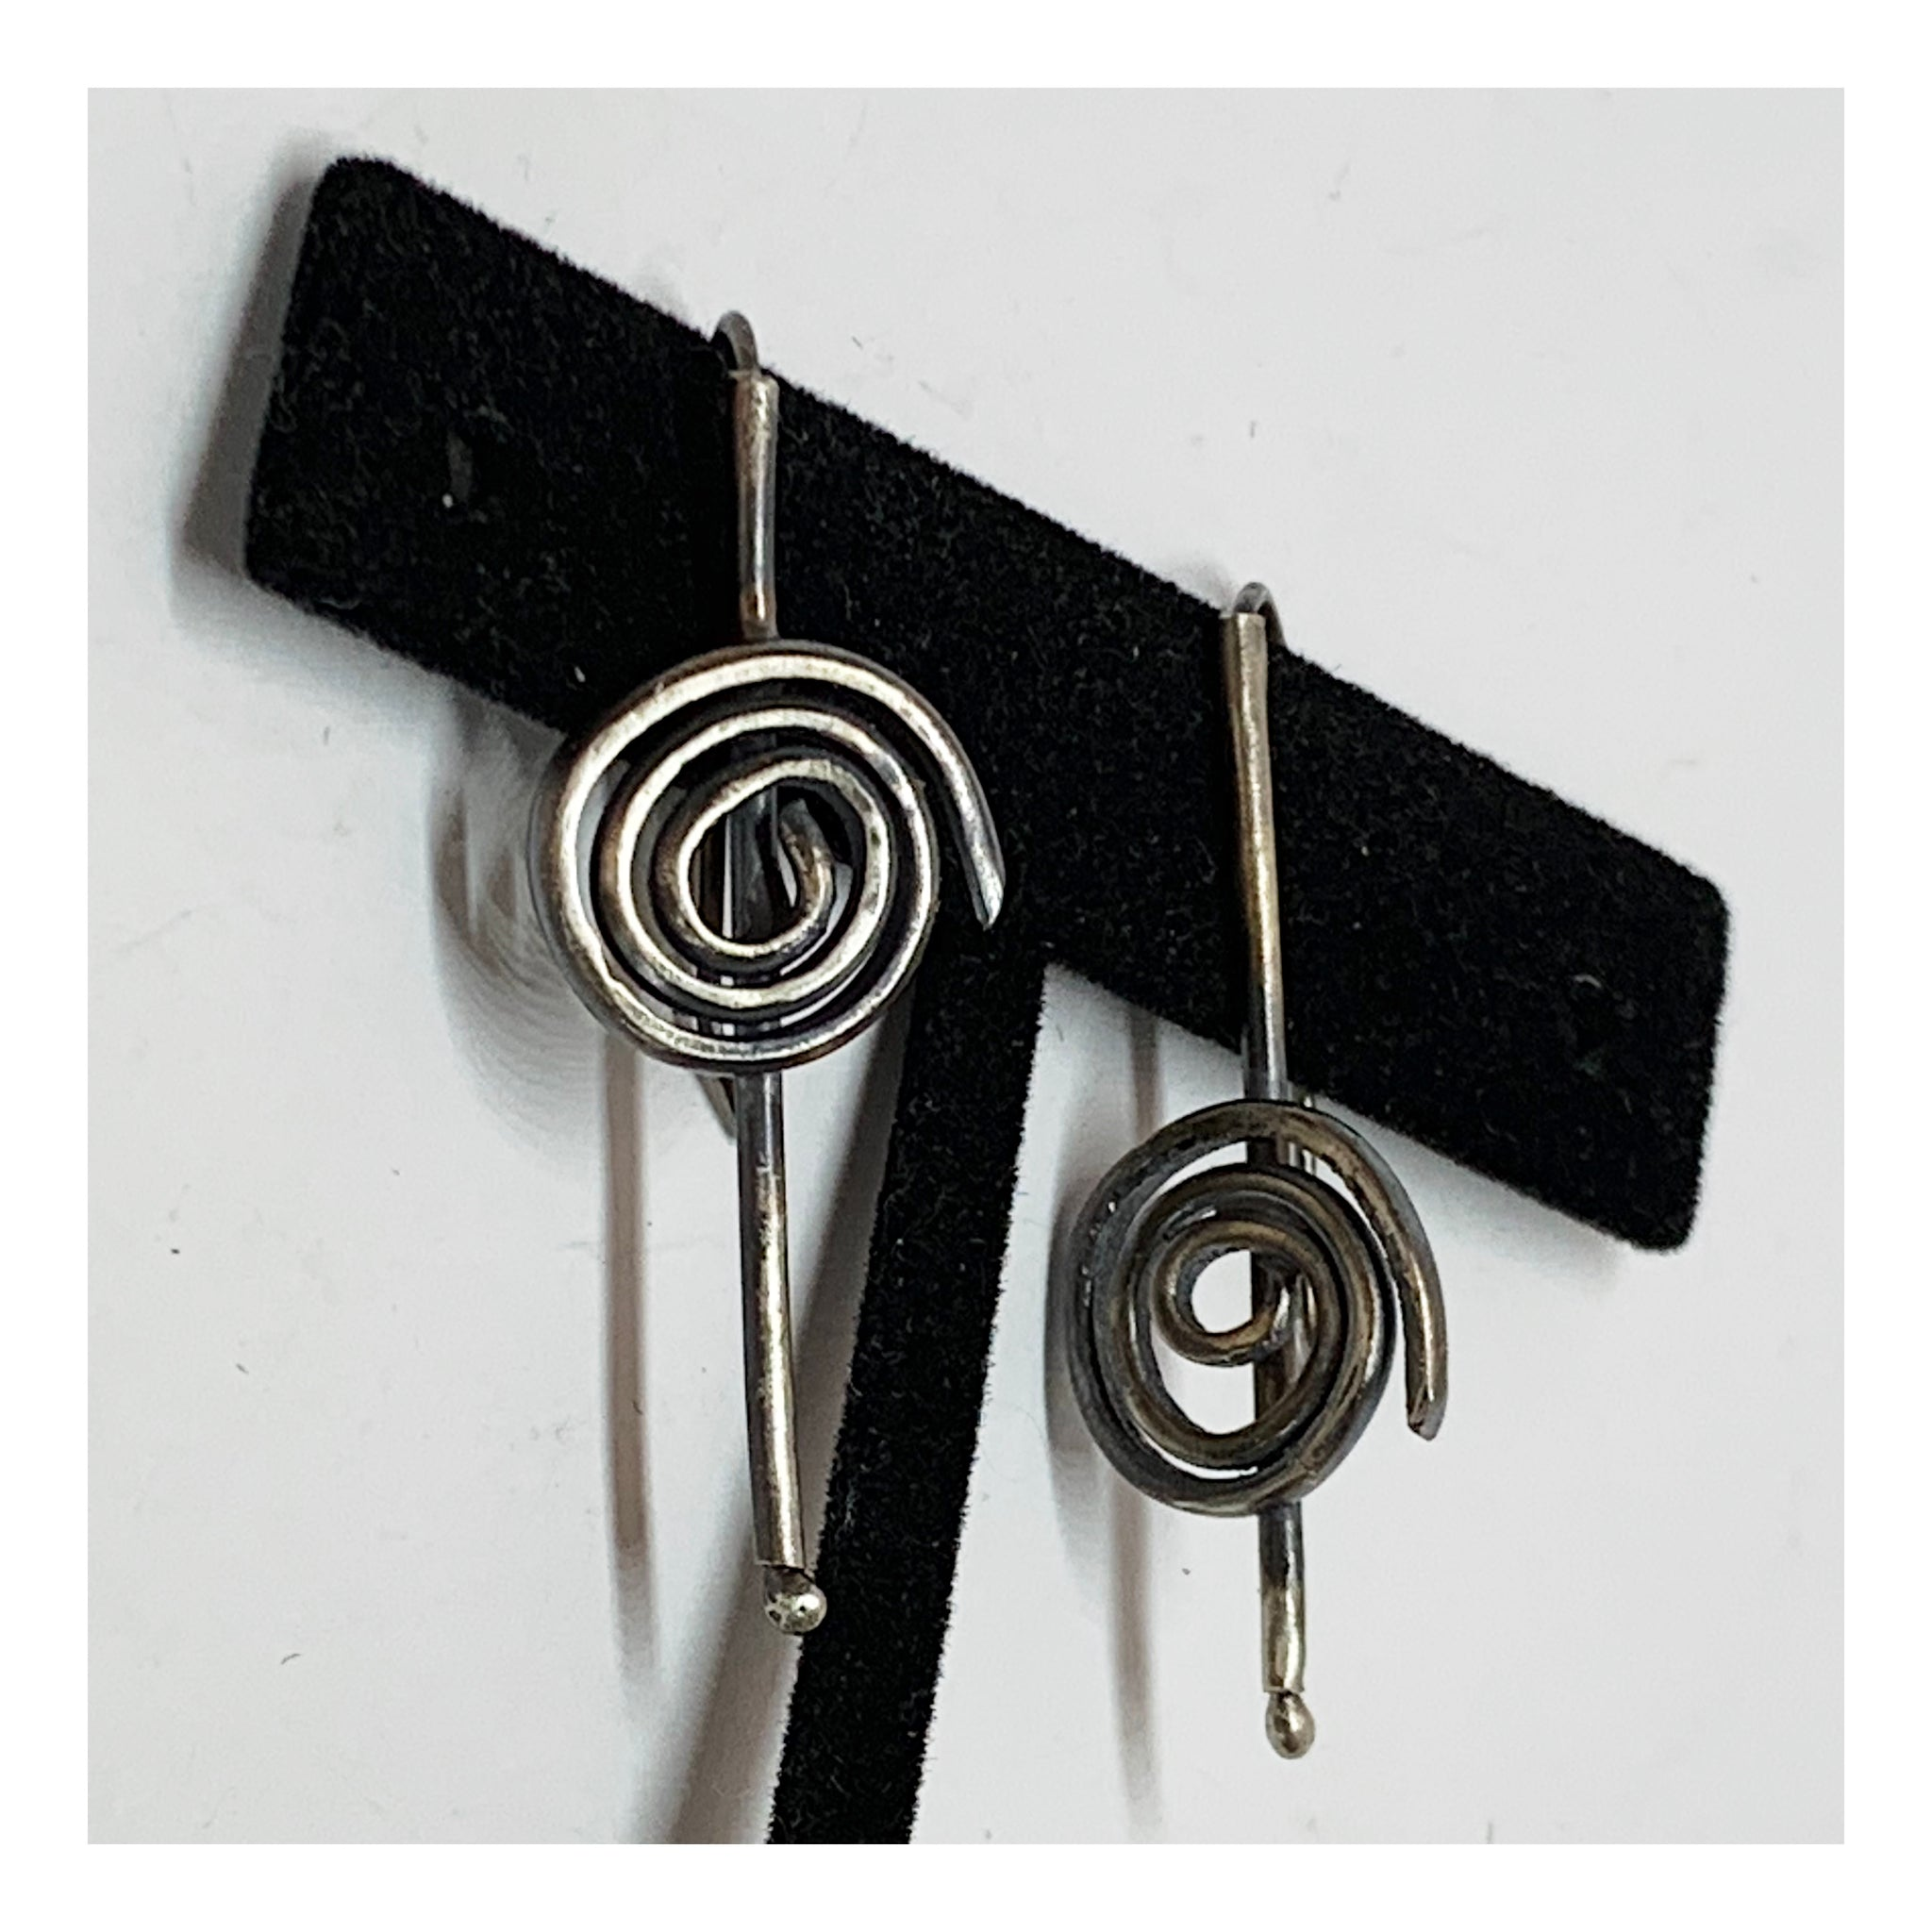 Asymmetrical Sterling Silver Earrings- Tube and Spiral Earrings - Jewelry With No Rules